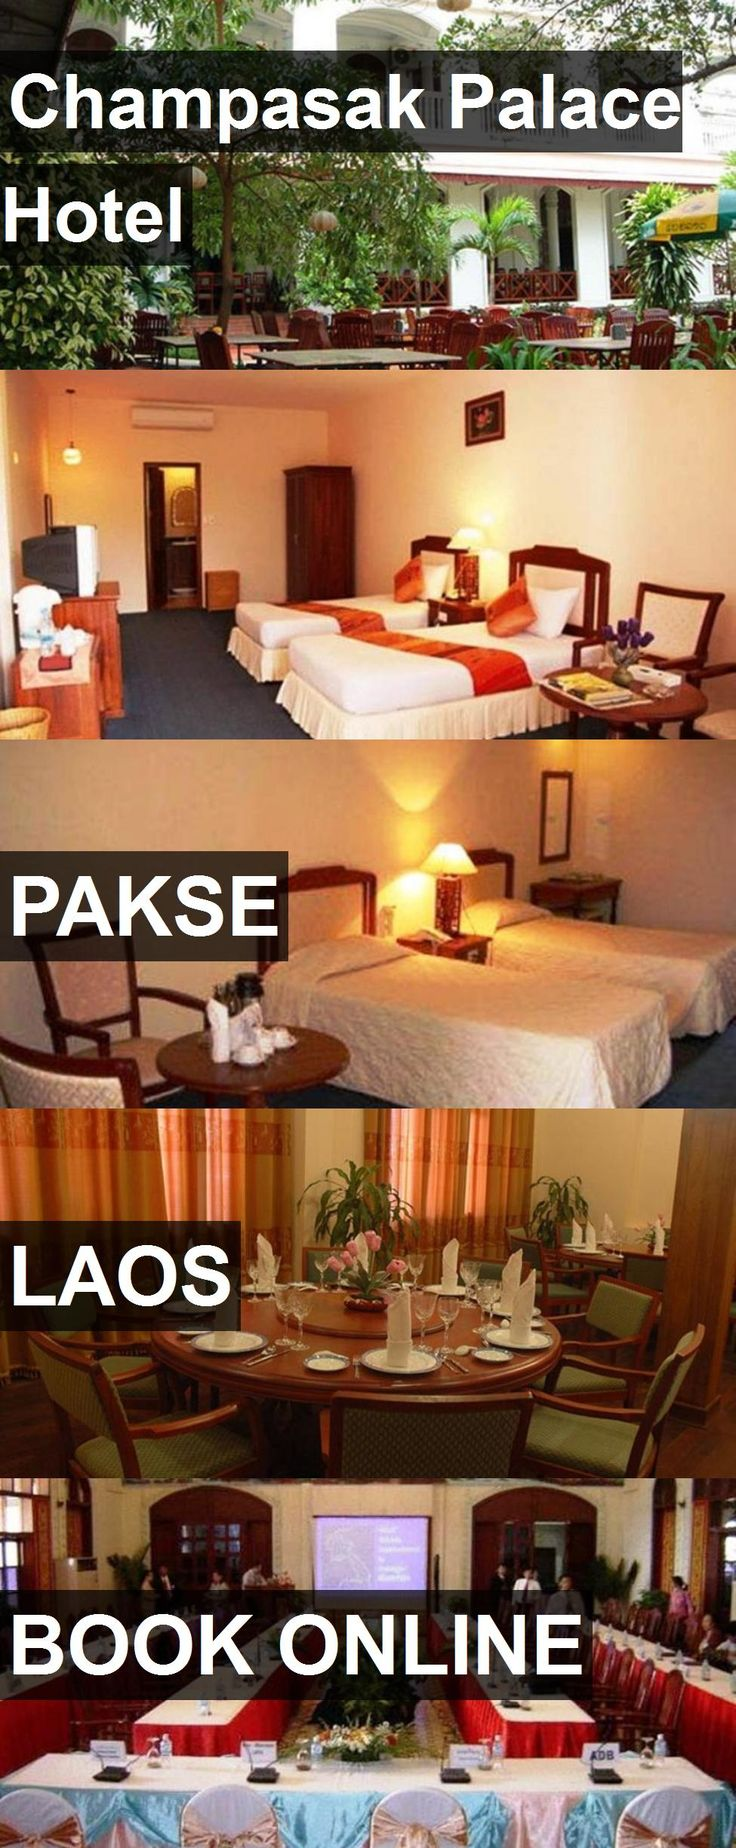 Champasak Palace Hotel in Pakse, Laos. For more information, photos, reviews and best prices please follow the link. #Laos #Pakse #travel #vacation #hotel